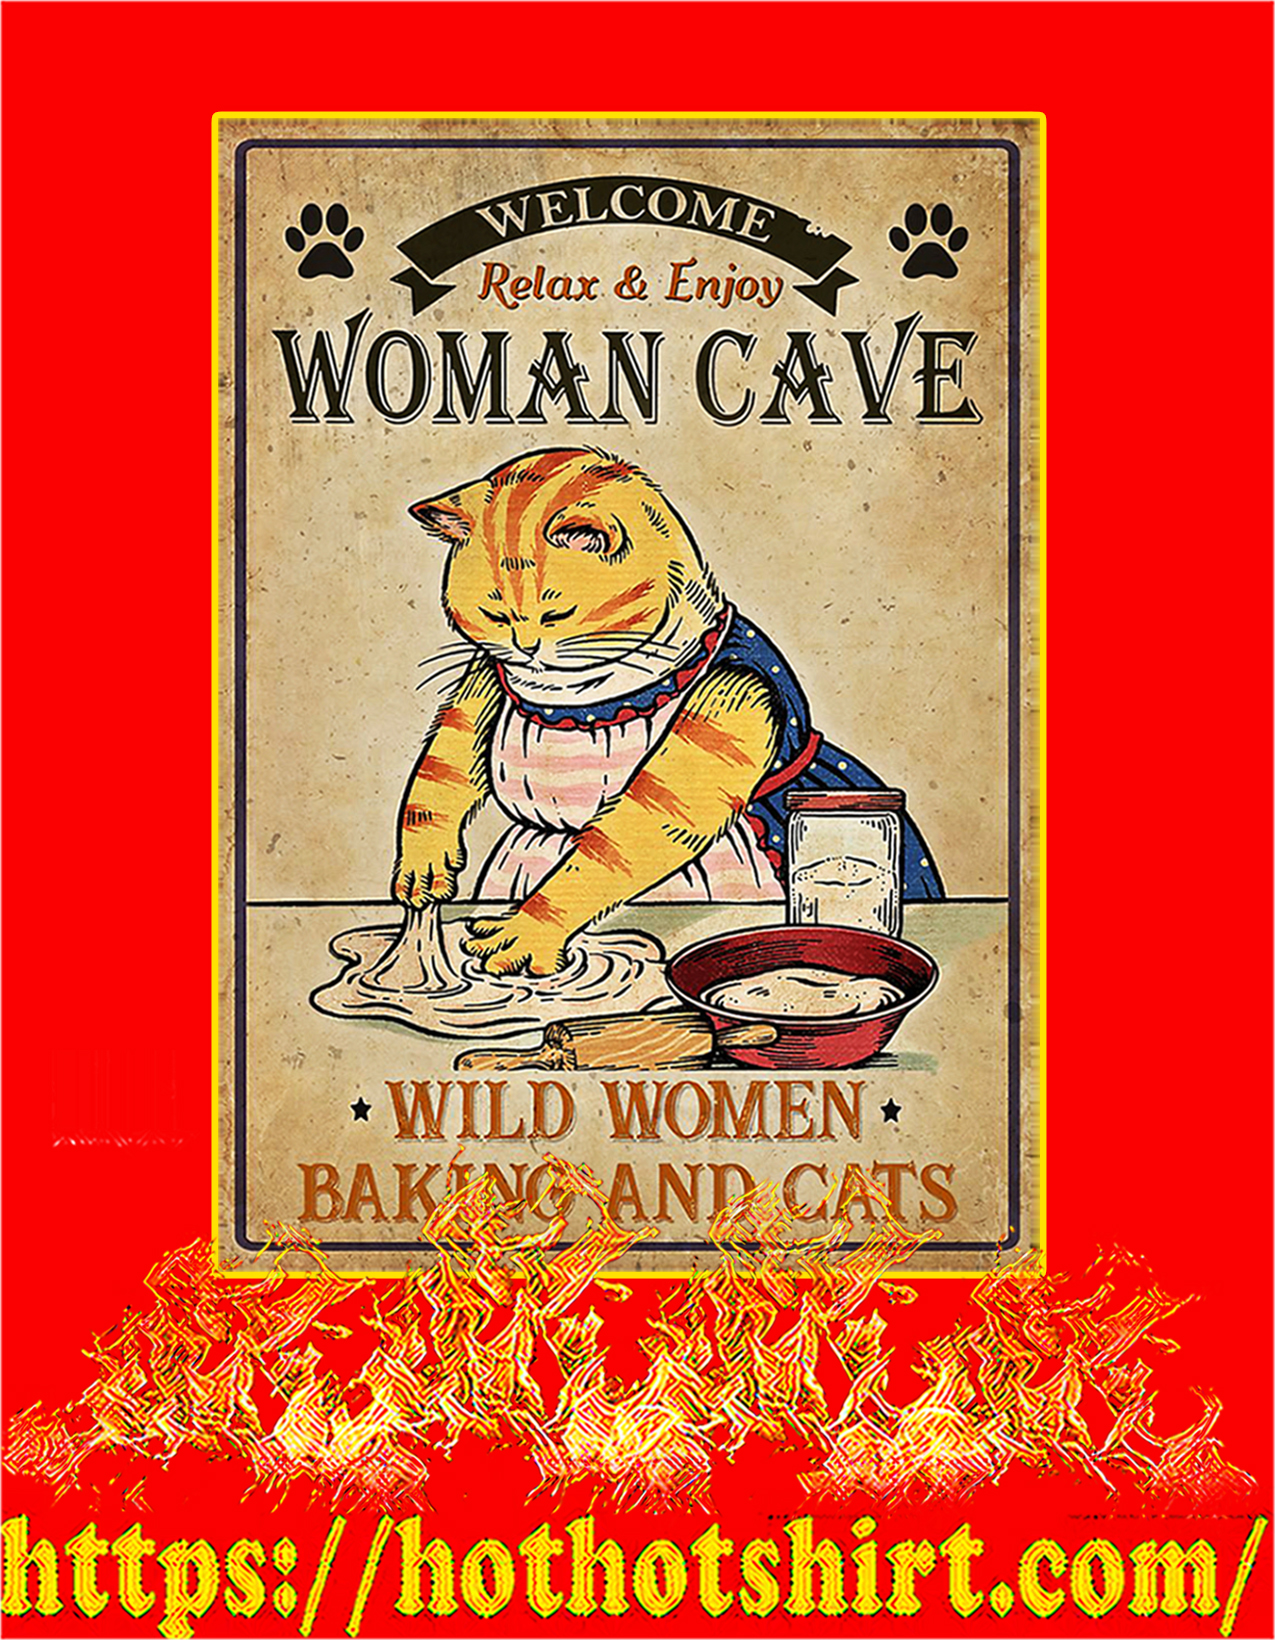 Welcome relax and enjoy woman cave wild women baking and cats poster - A2